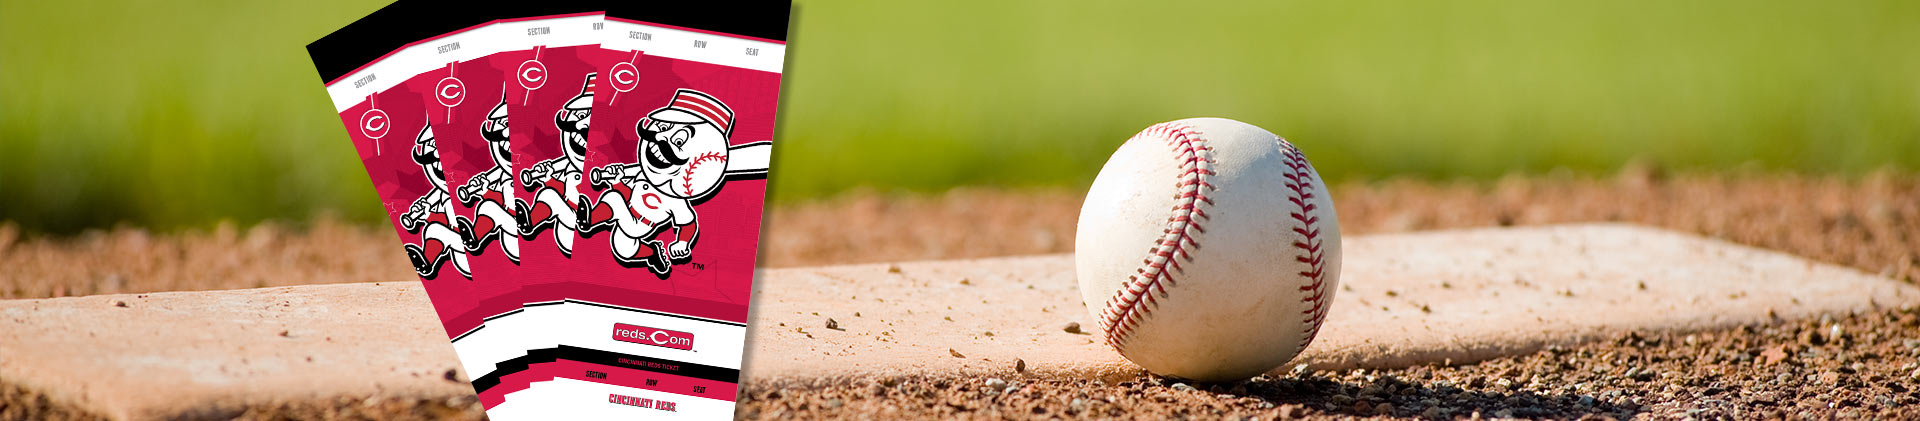 cincinnati reds tickets & prizes giveaway western & southern life